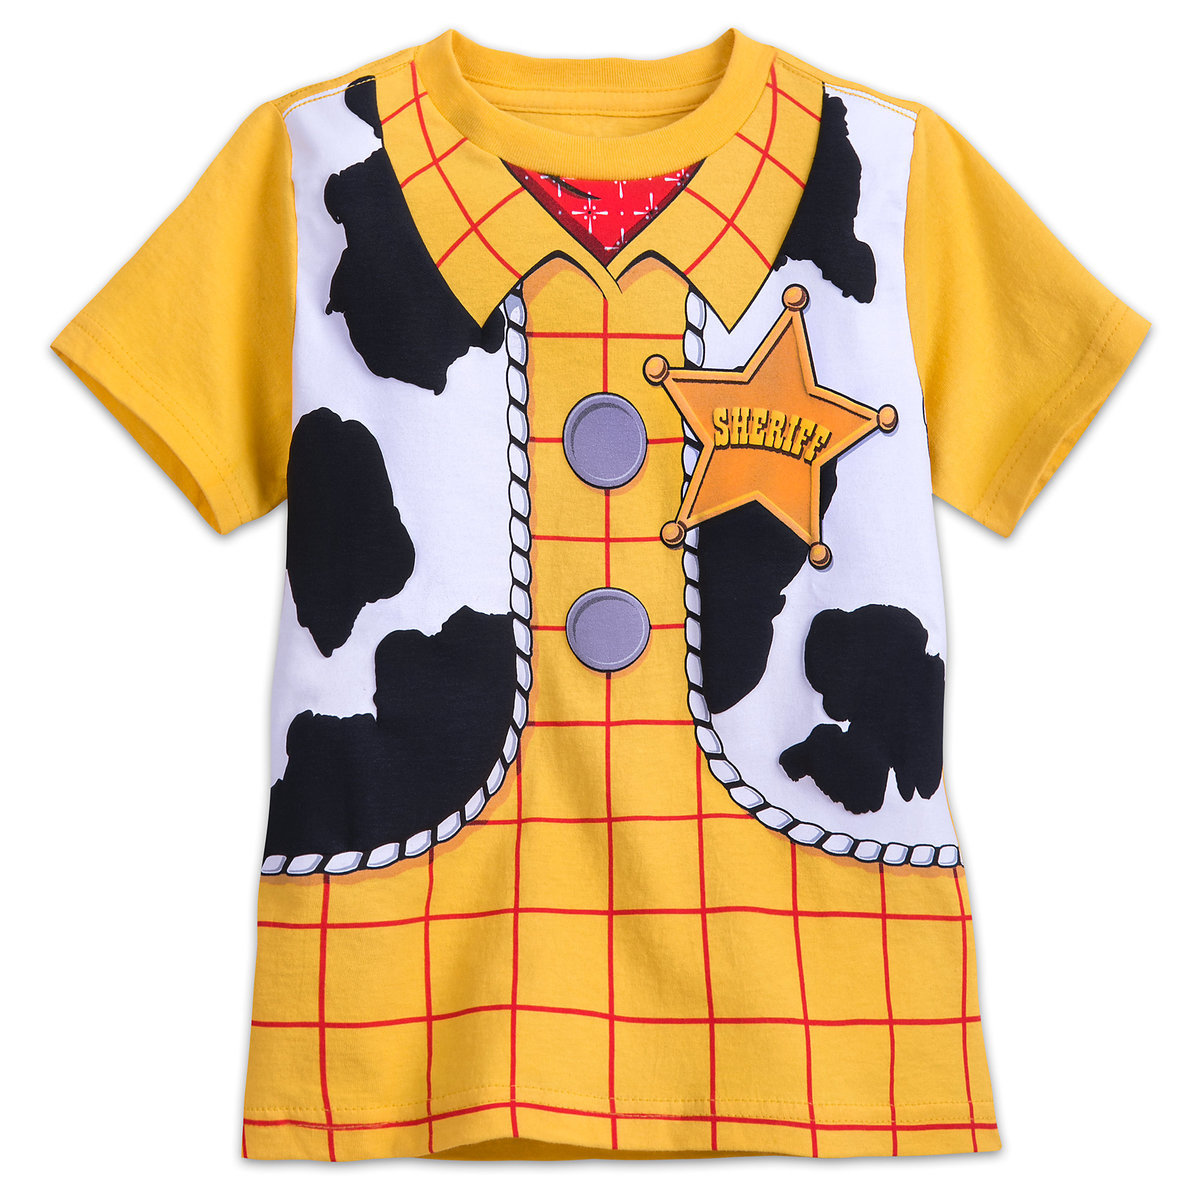 8f8ea9345 Product Image of Woody Costume T-Shirt for Kids # 1